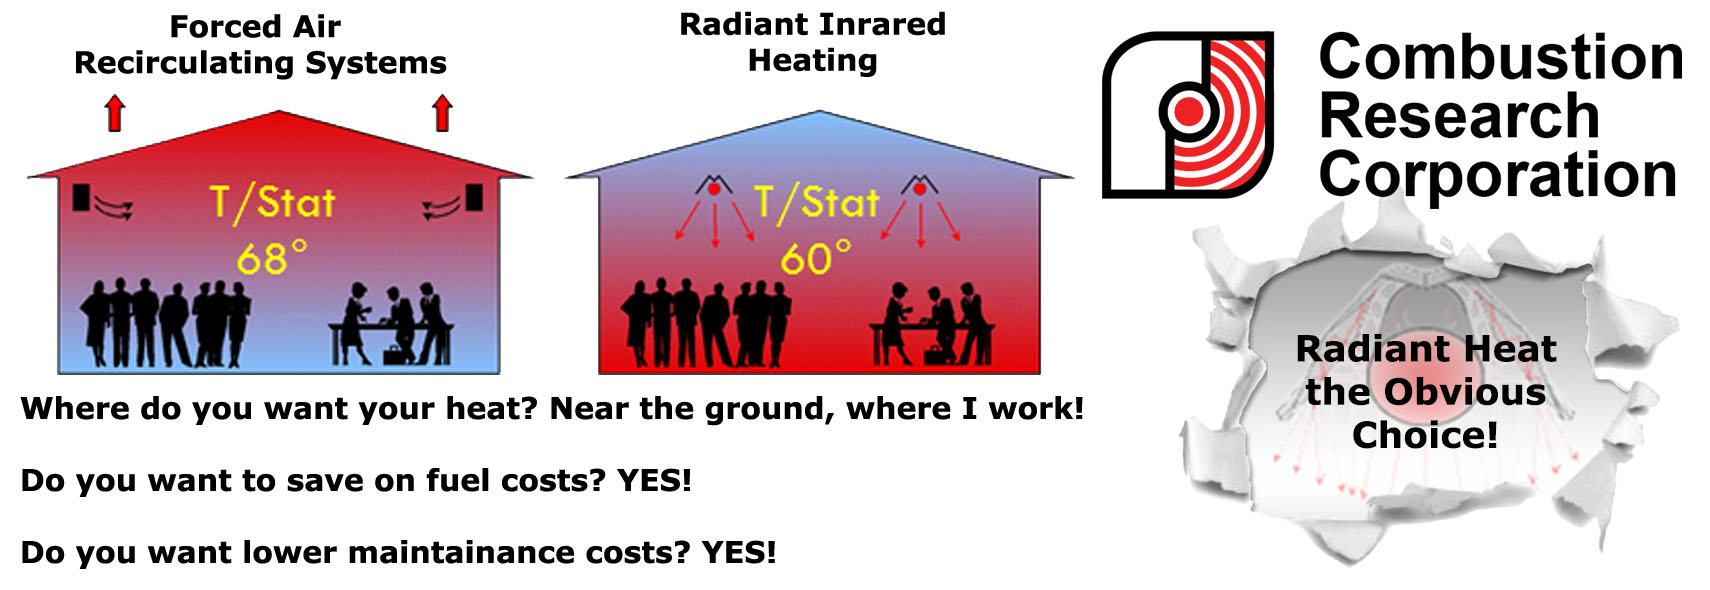 What is Infrared and radaint heat